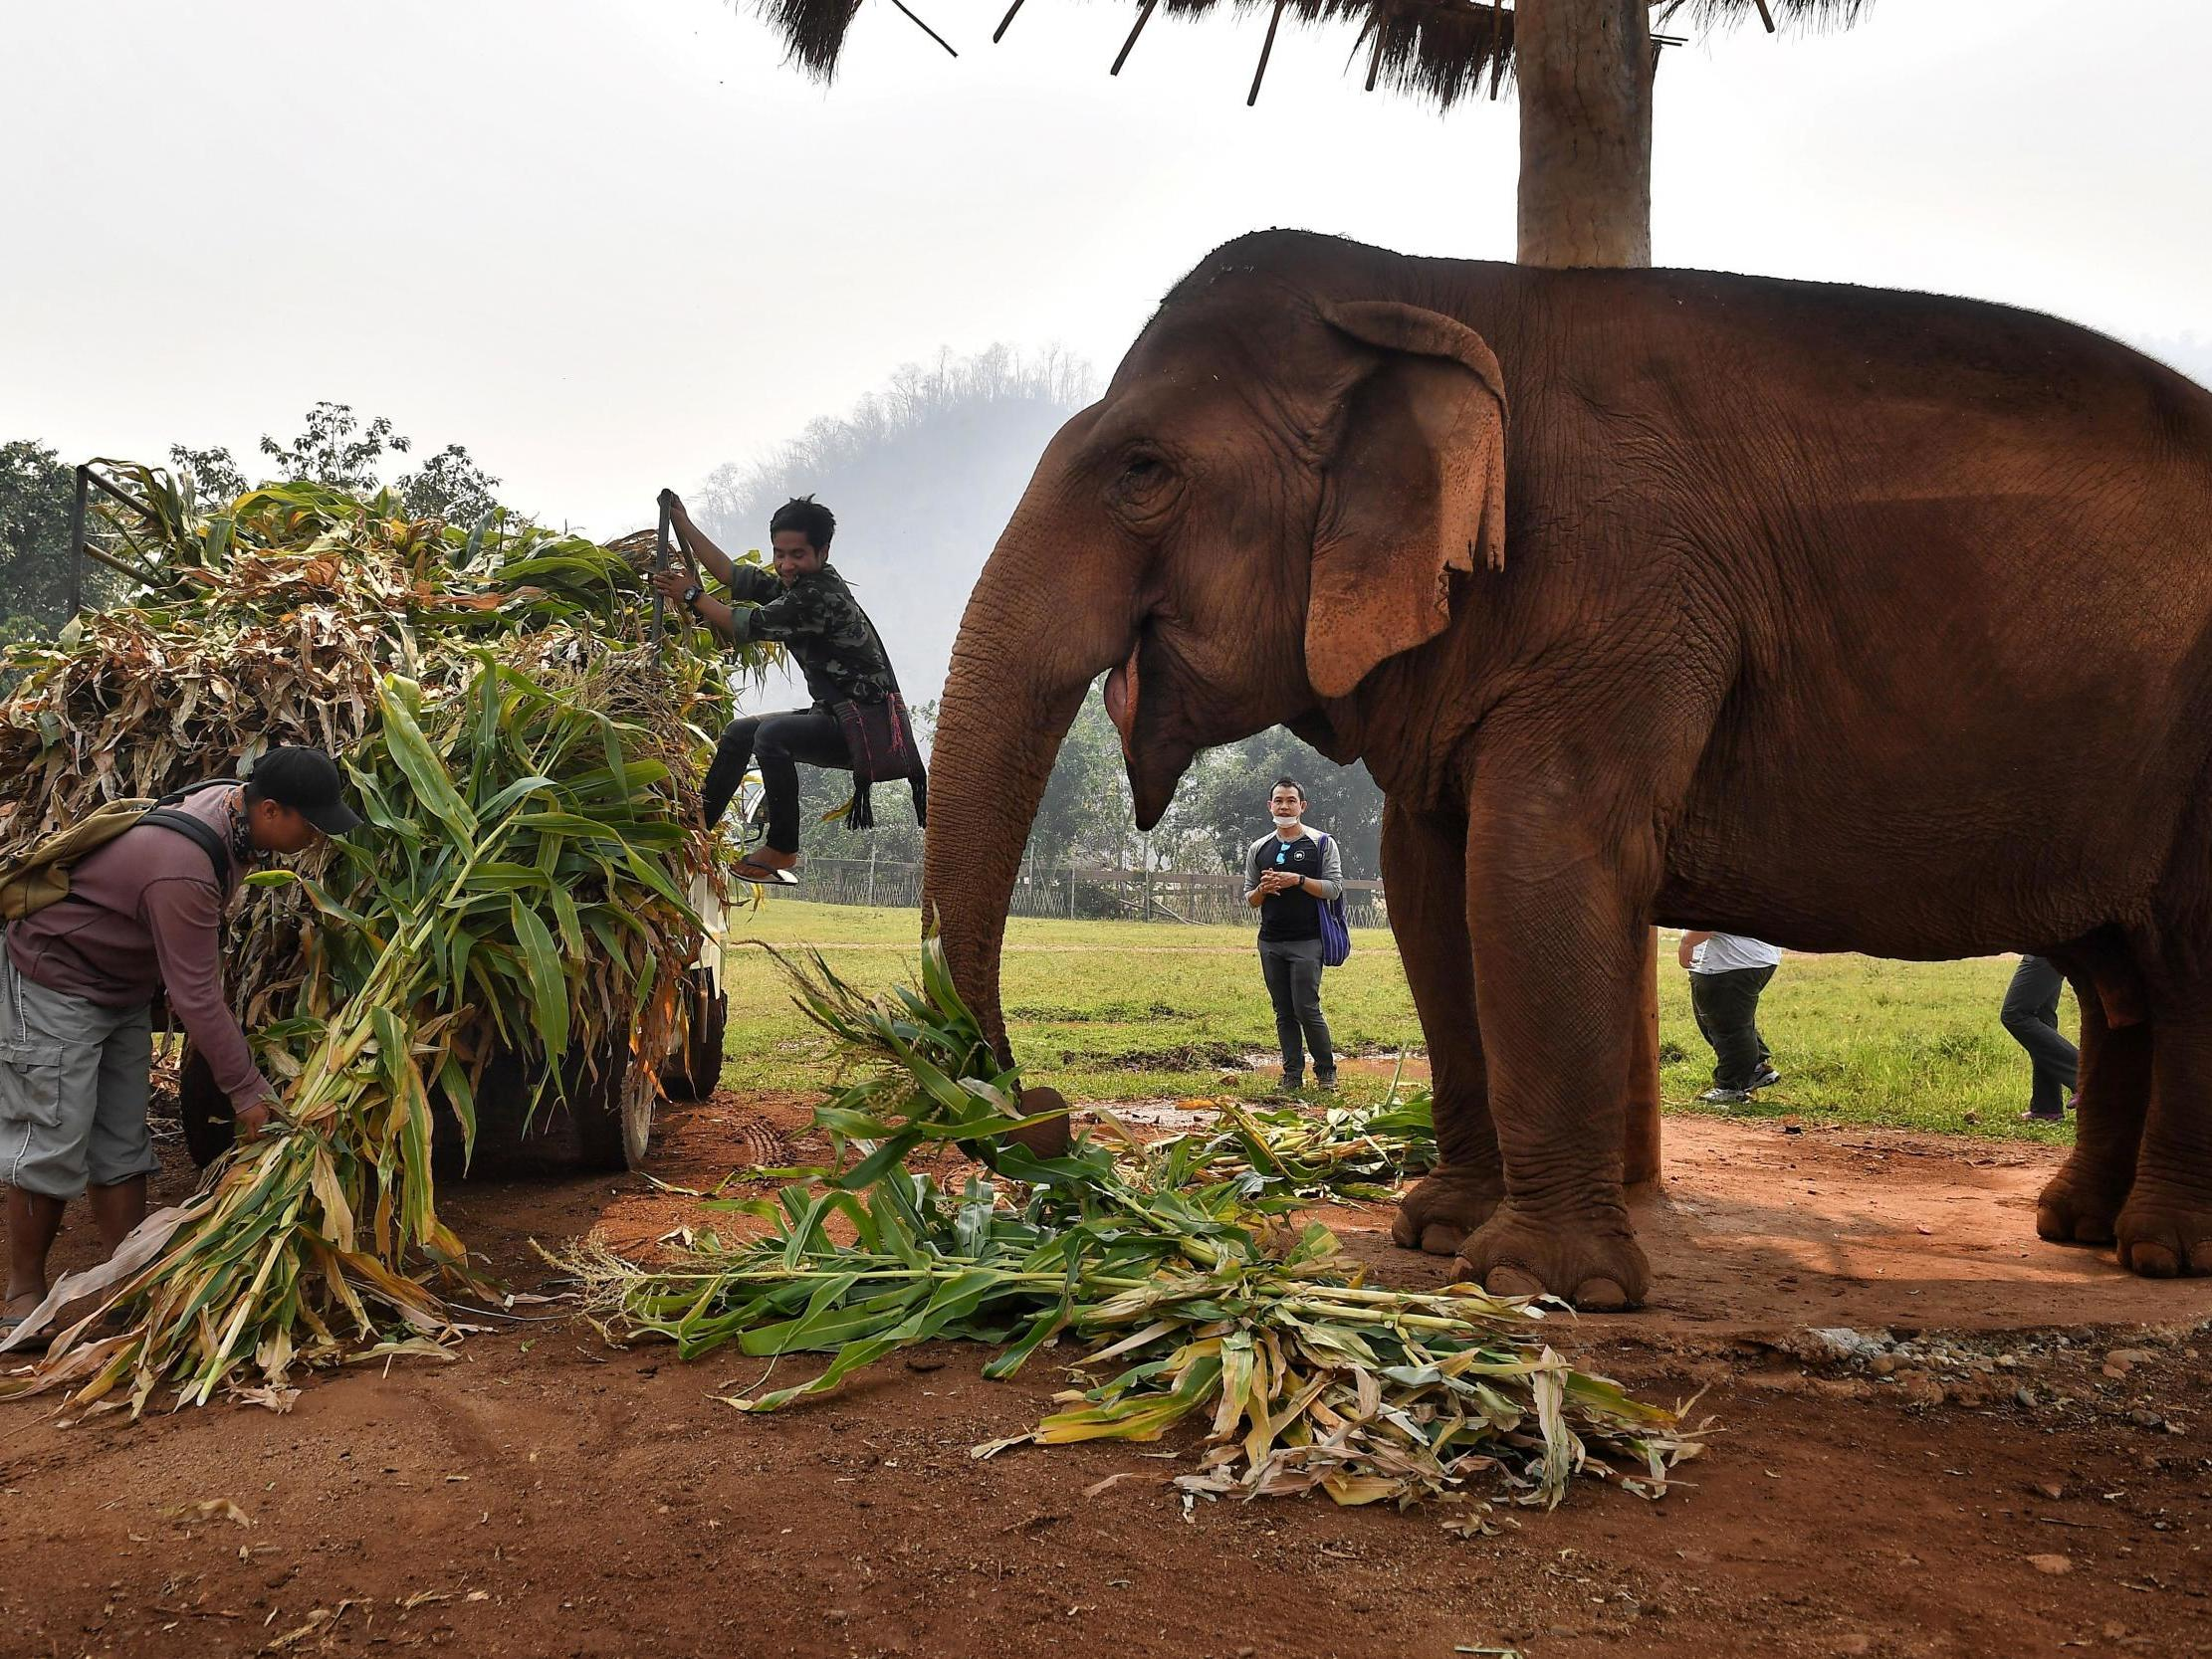 Dozens of elephants used for carrying tourists 'set free' as parks closed due to coronavirus pandemic